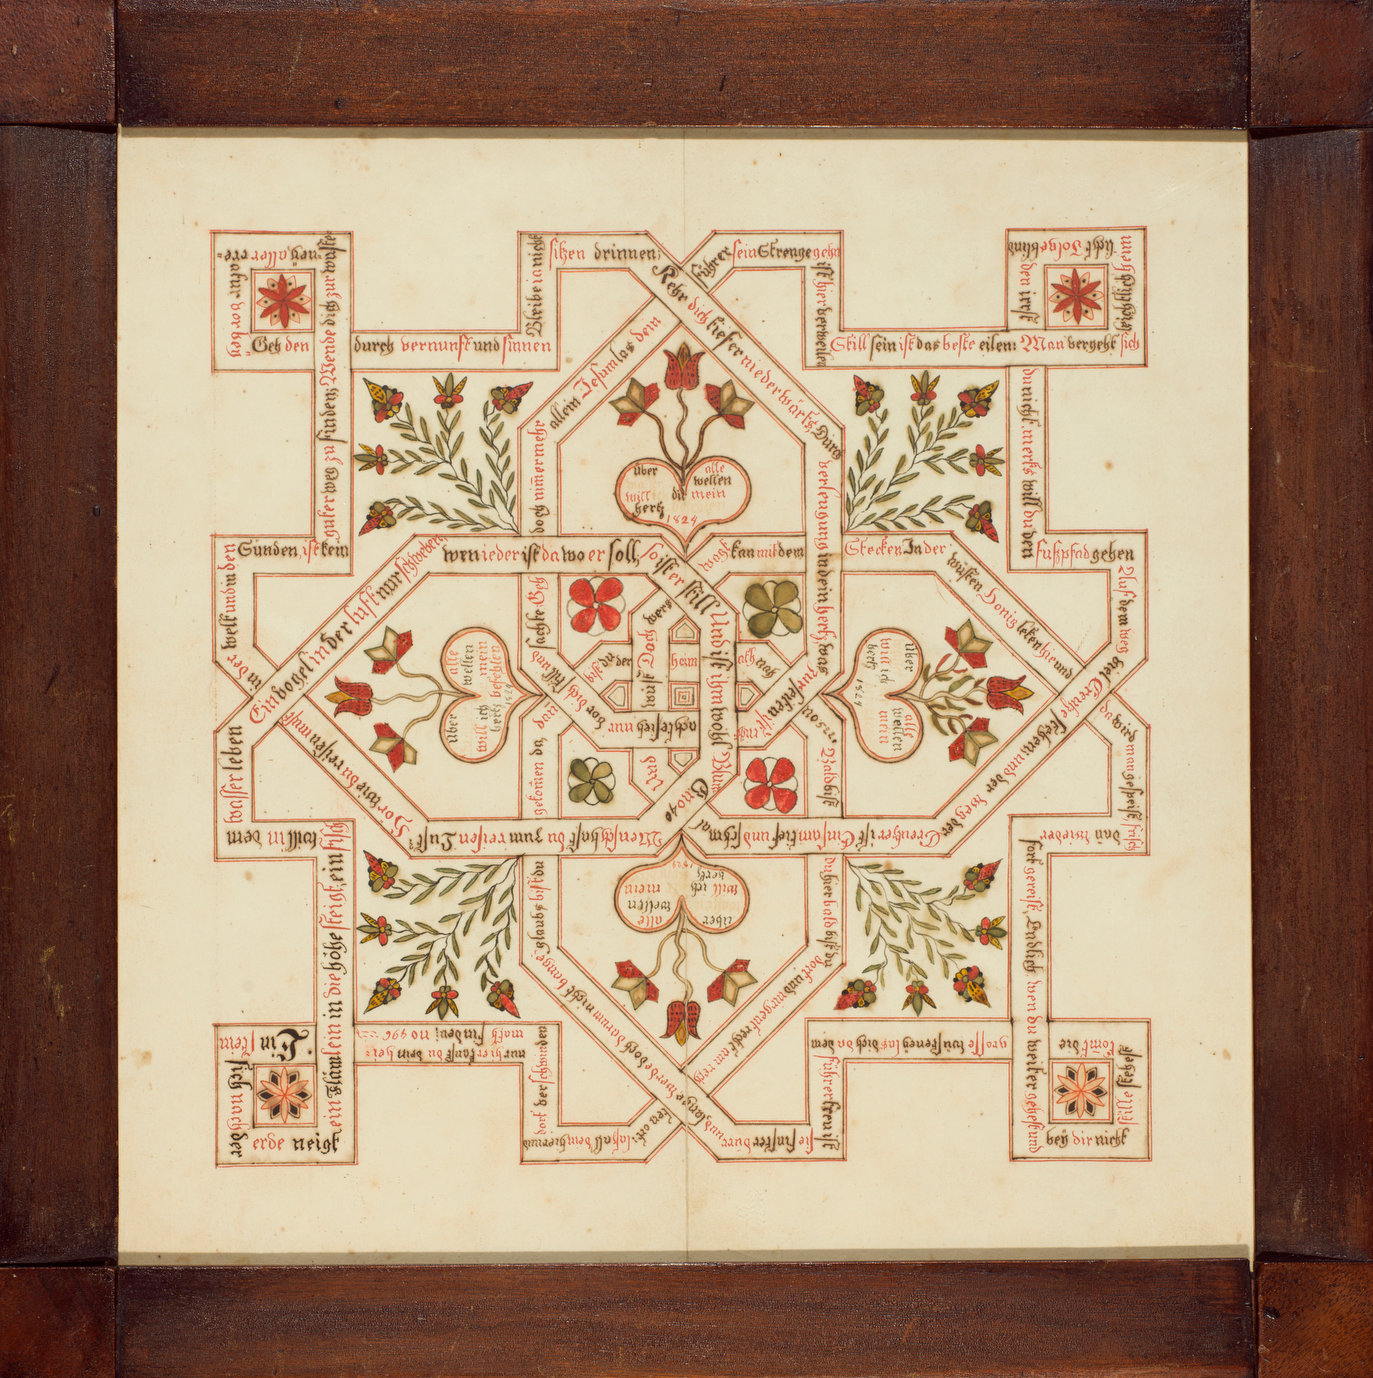 A fraktur labyrinth, a style of Pennsylvania-German folk art, dated 1824. The pattern is designed as an endless knot, offered as a token of affection.